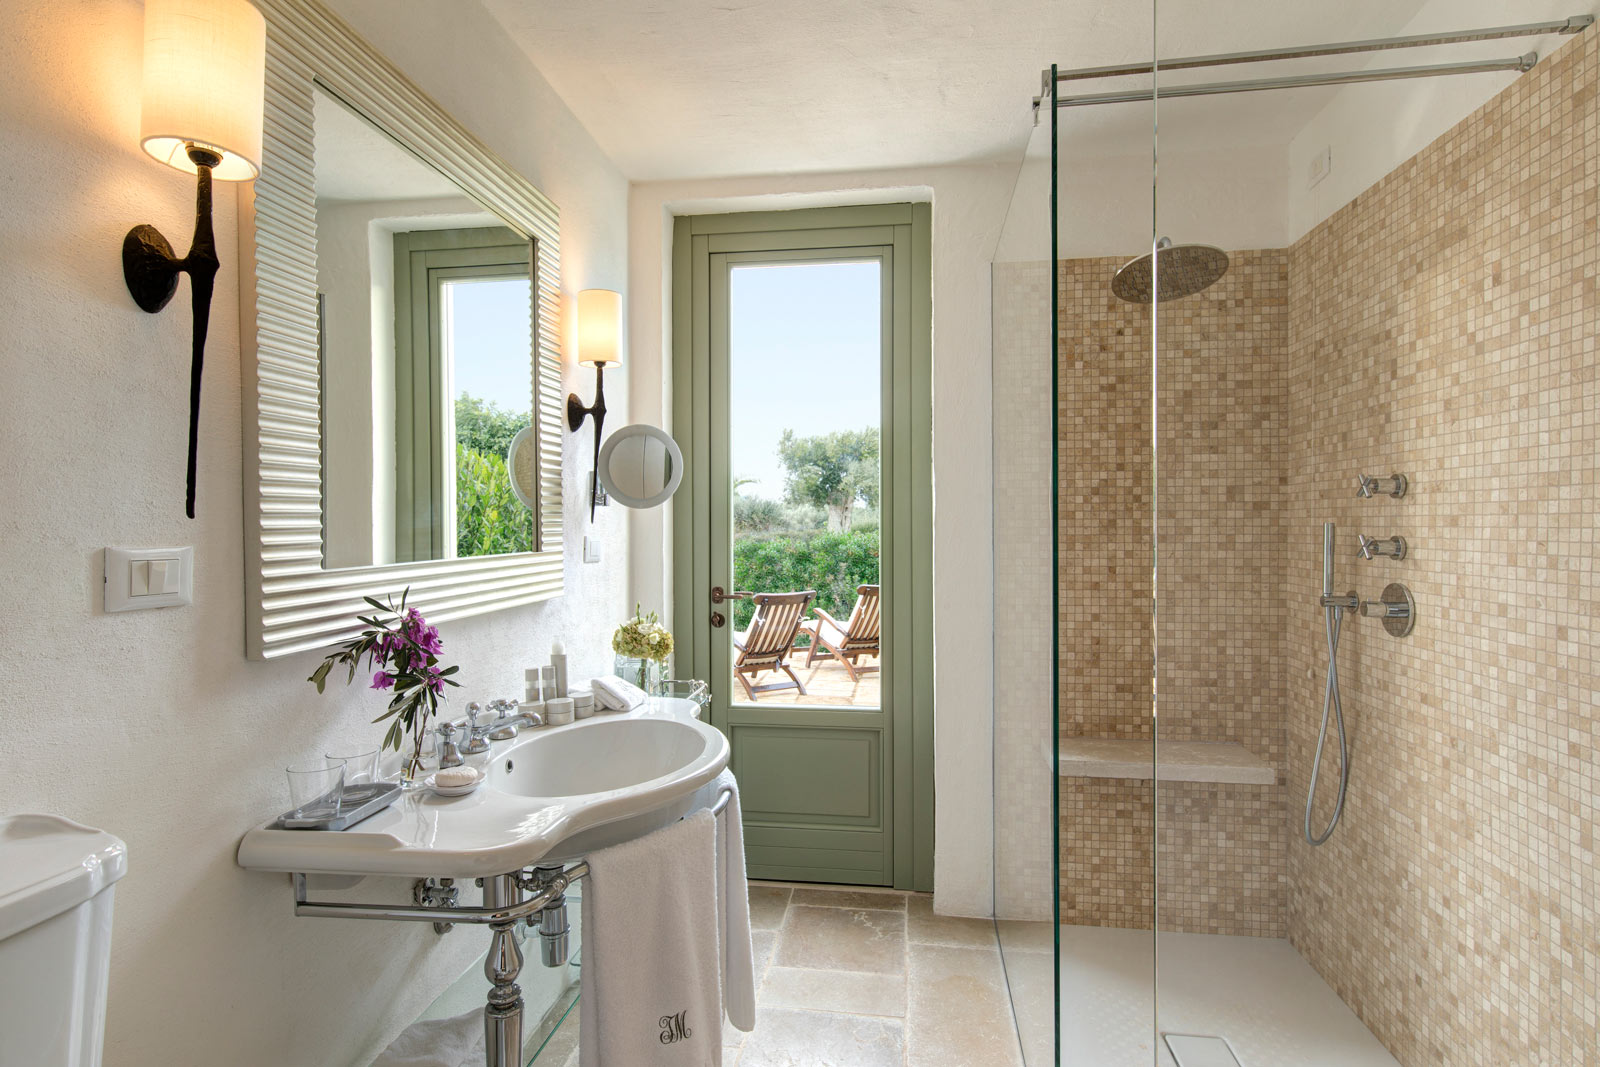 Masseria Torre Maizza Deluxe Room Bathroom